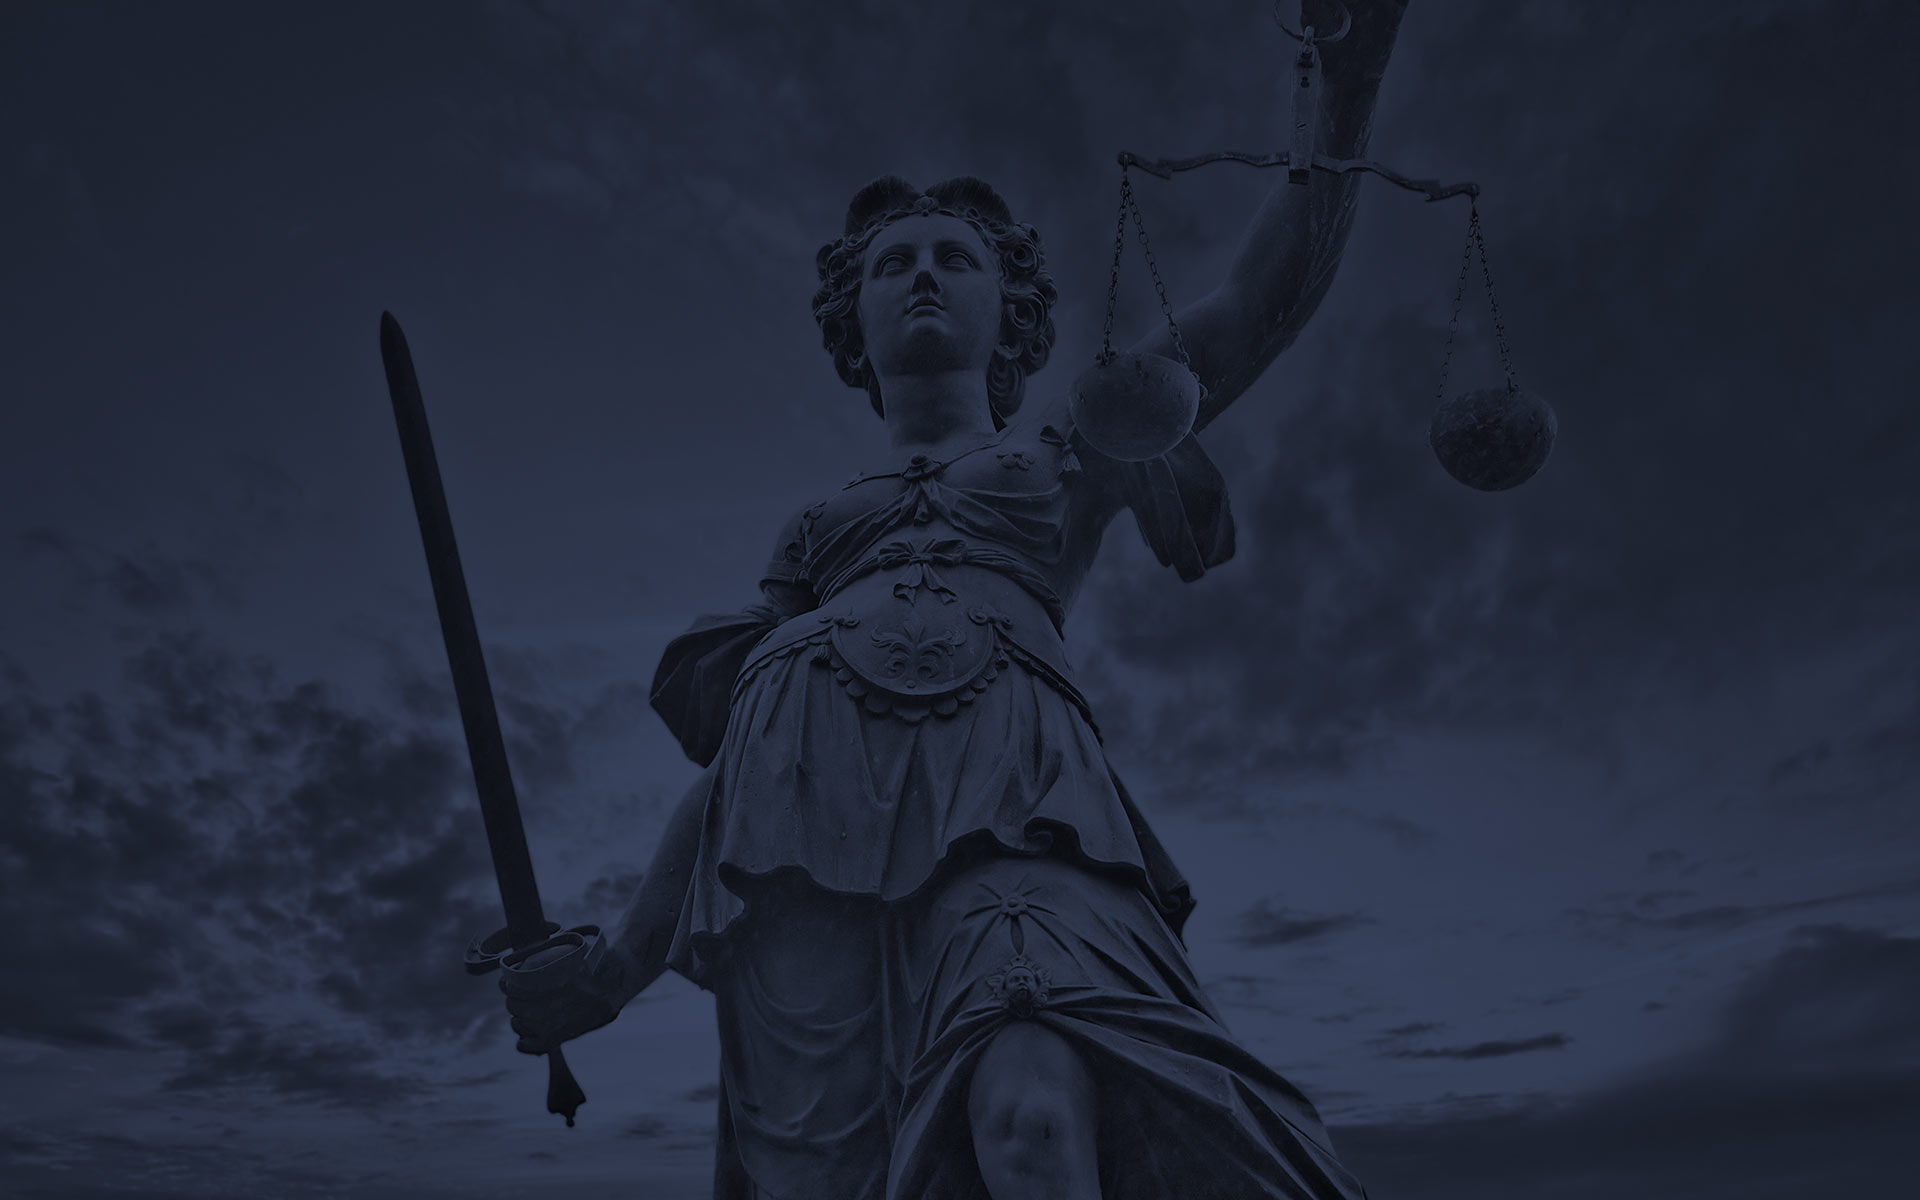 lady justice holding a sword